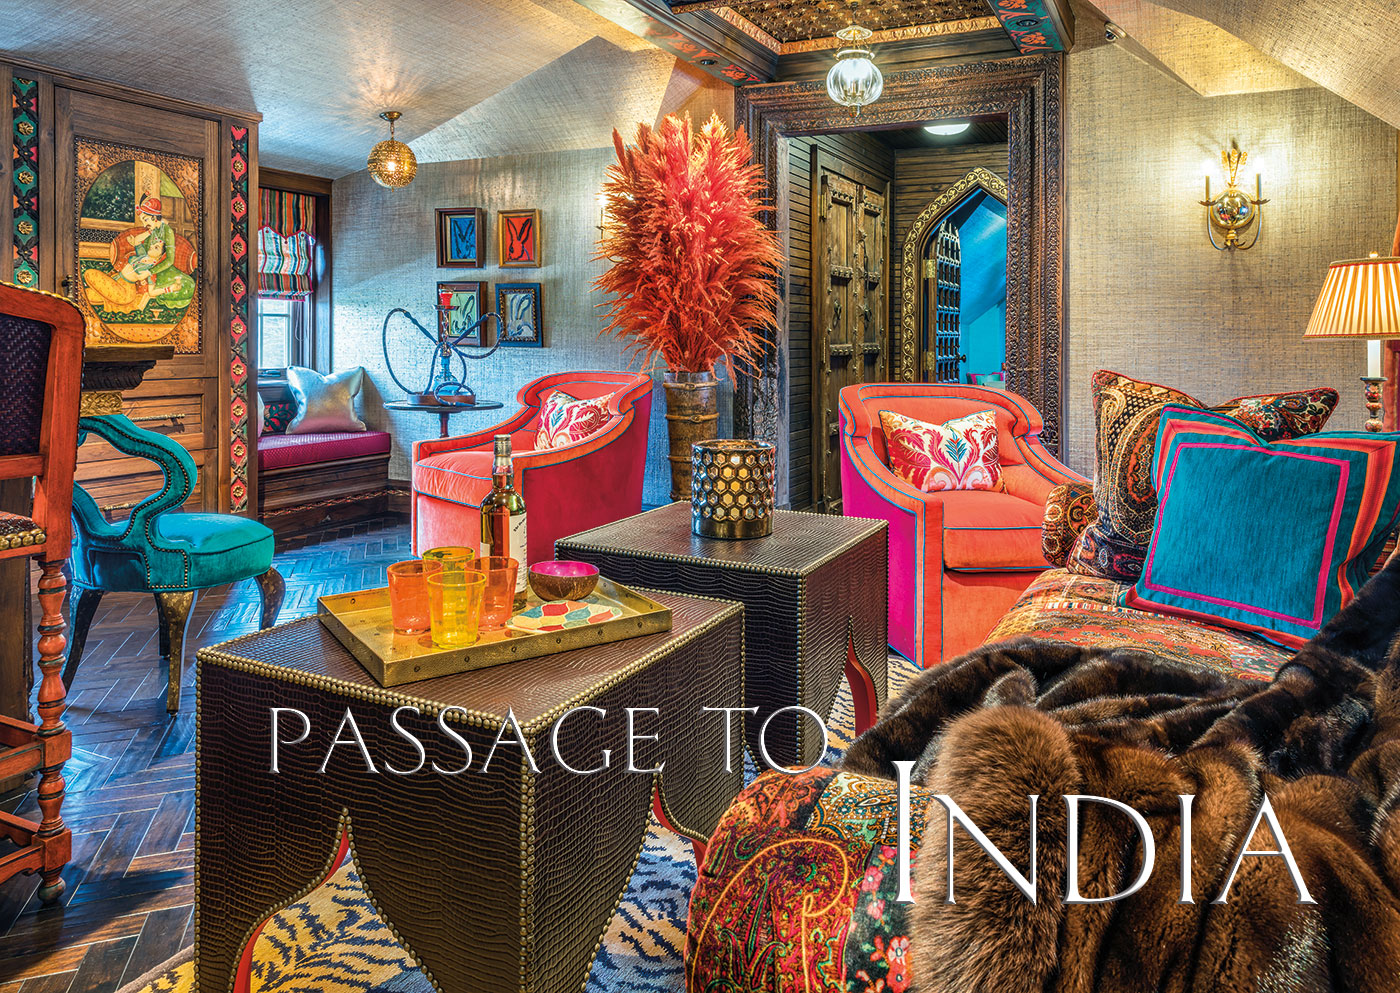 Interior design inspired by India by Anthony Catalfano Interiors